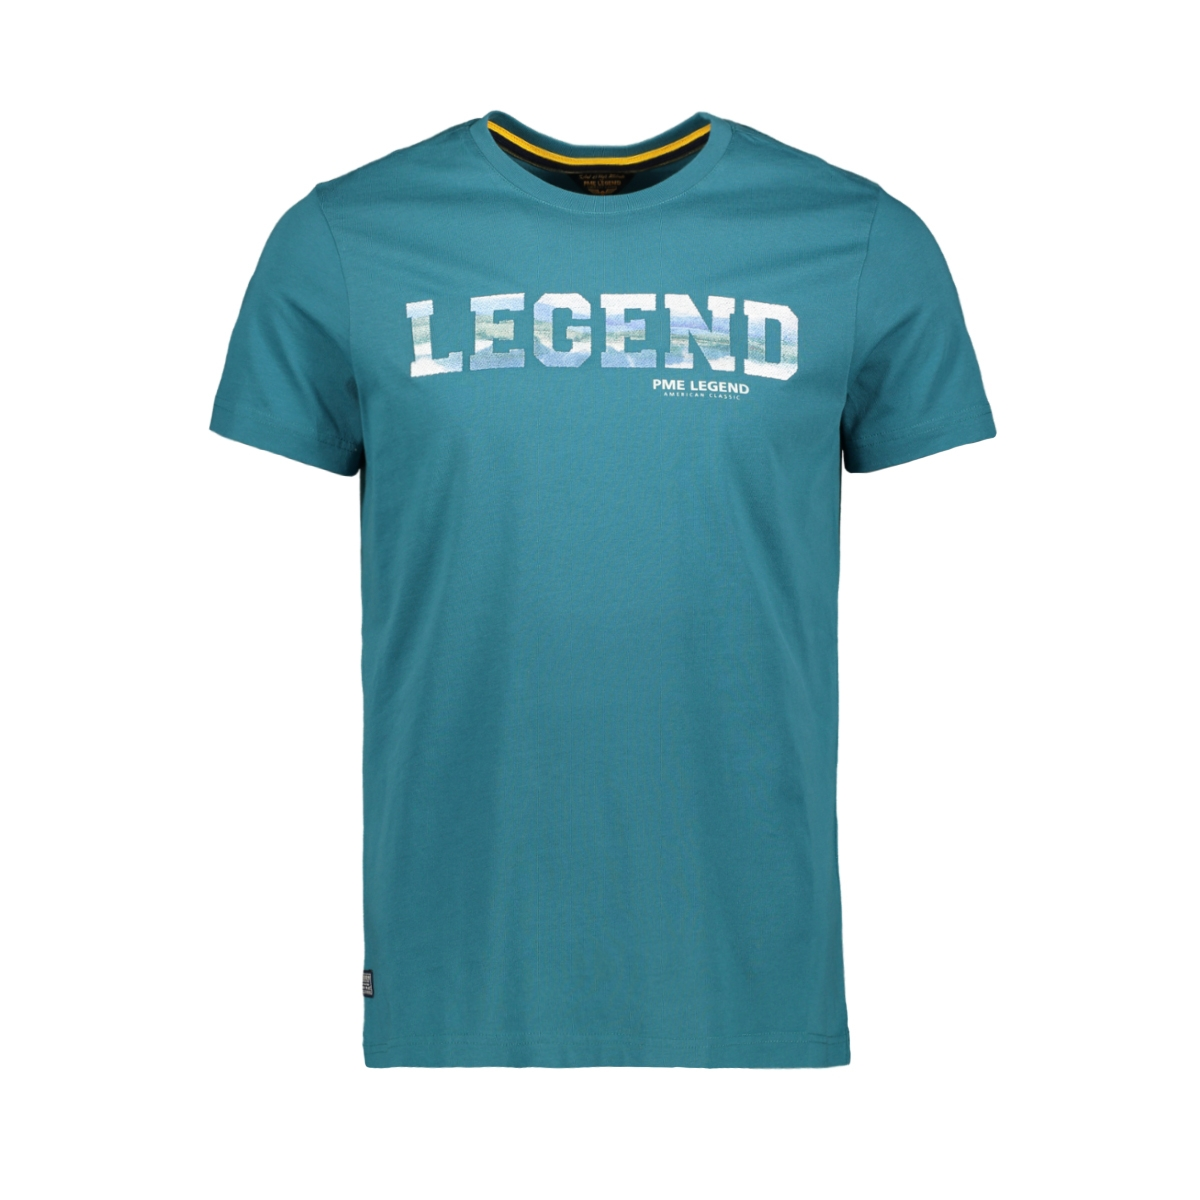 single jersey tshirt ptss204581 pme legend t-shirt 5254